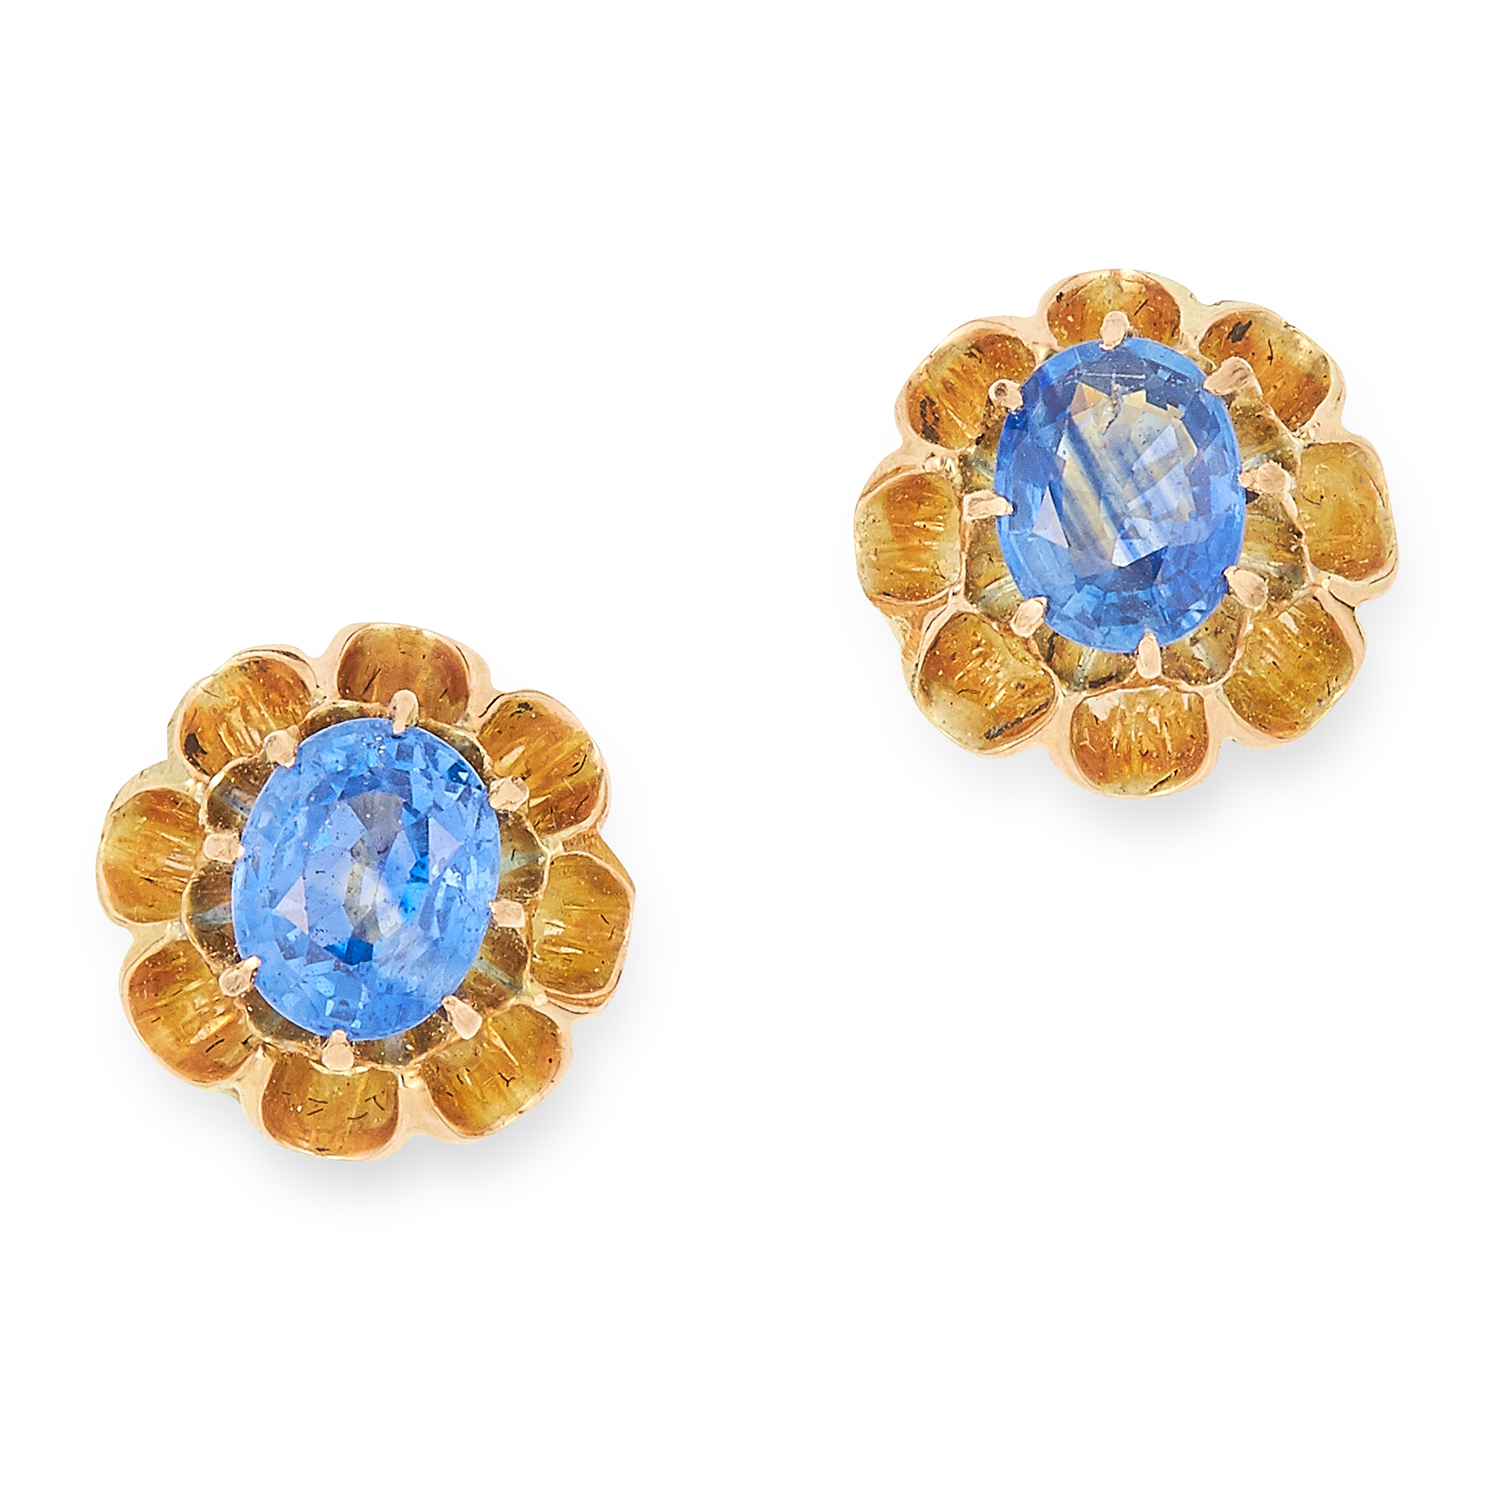 Los 35 - SAPPHIRE EARRINGS, set with oval cut sapphires in a floral border, 9mm, 3g.